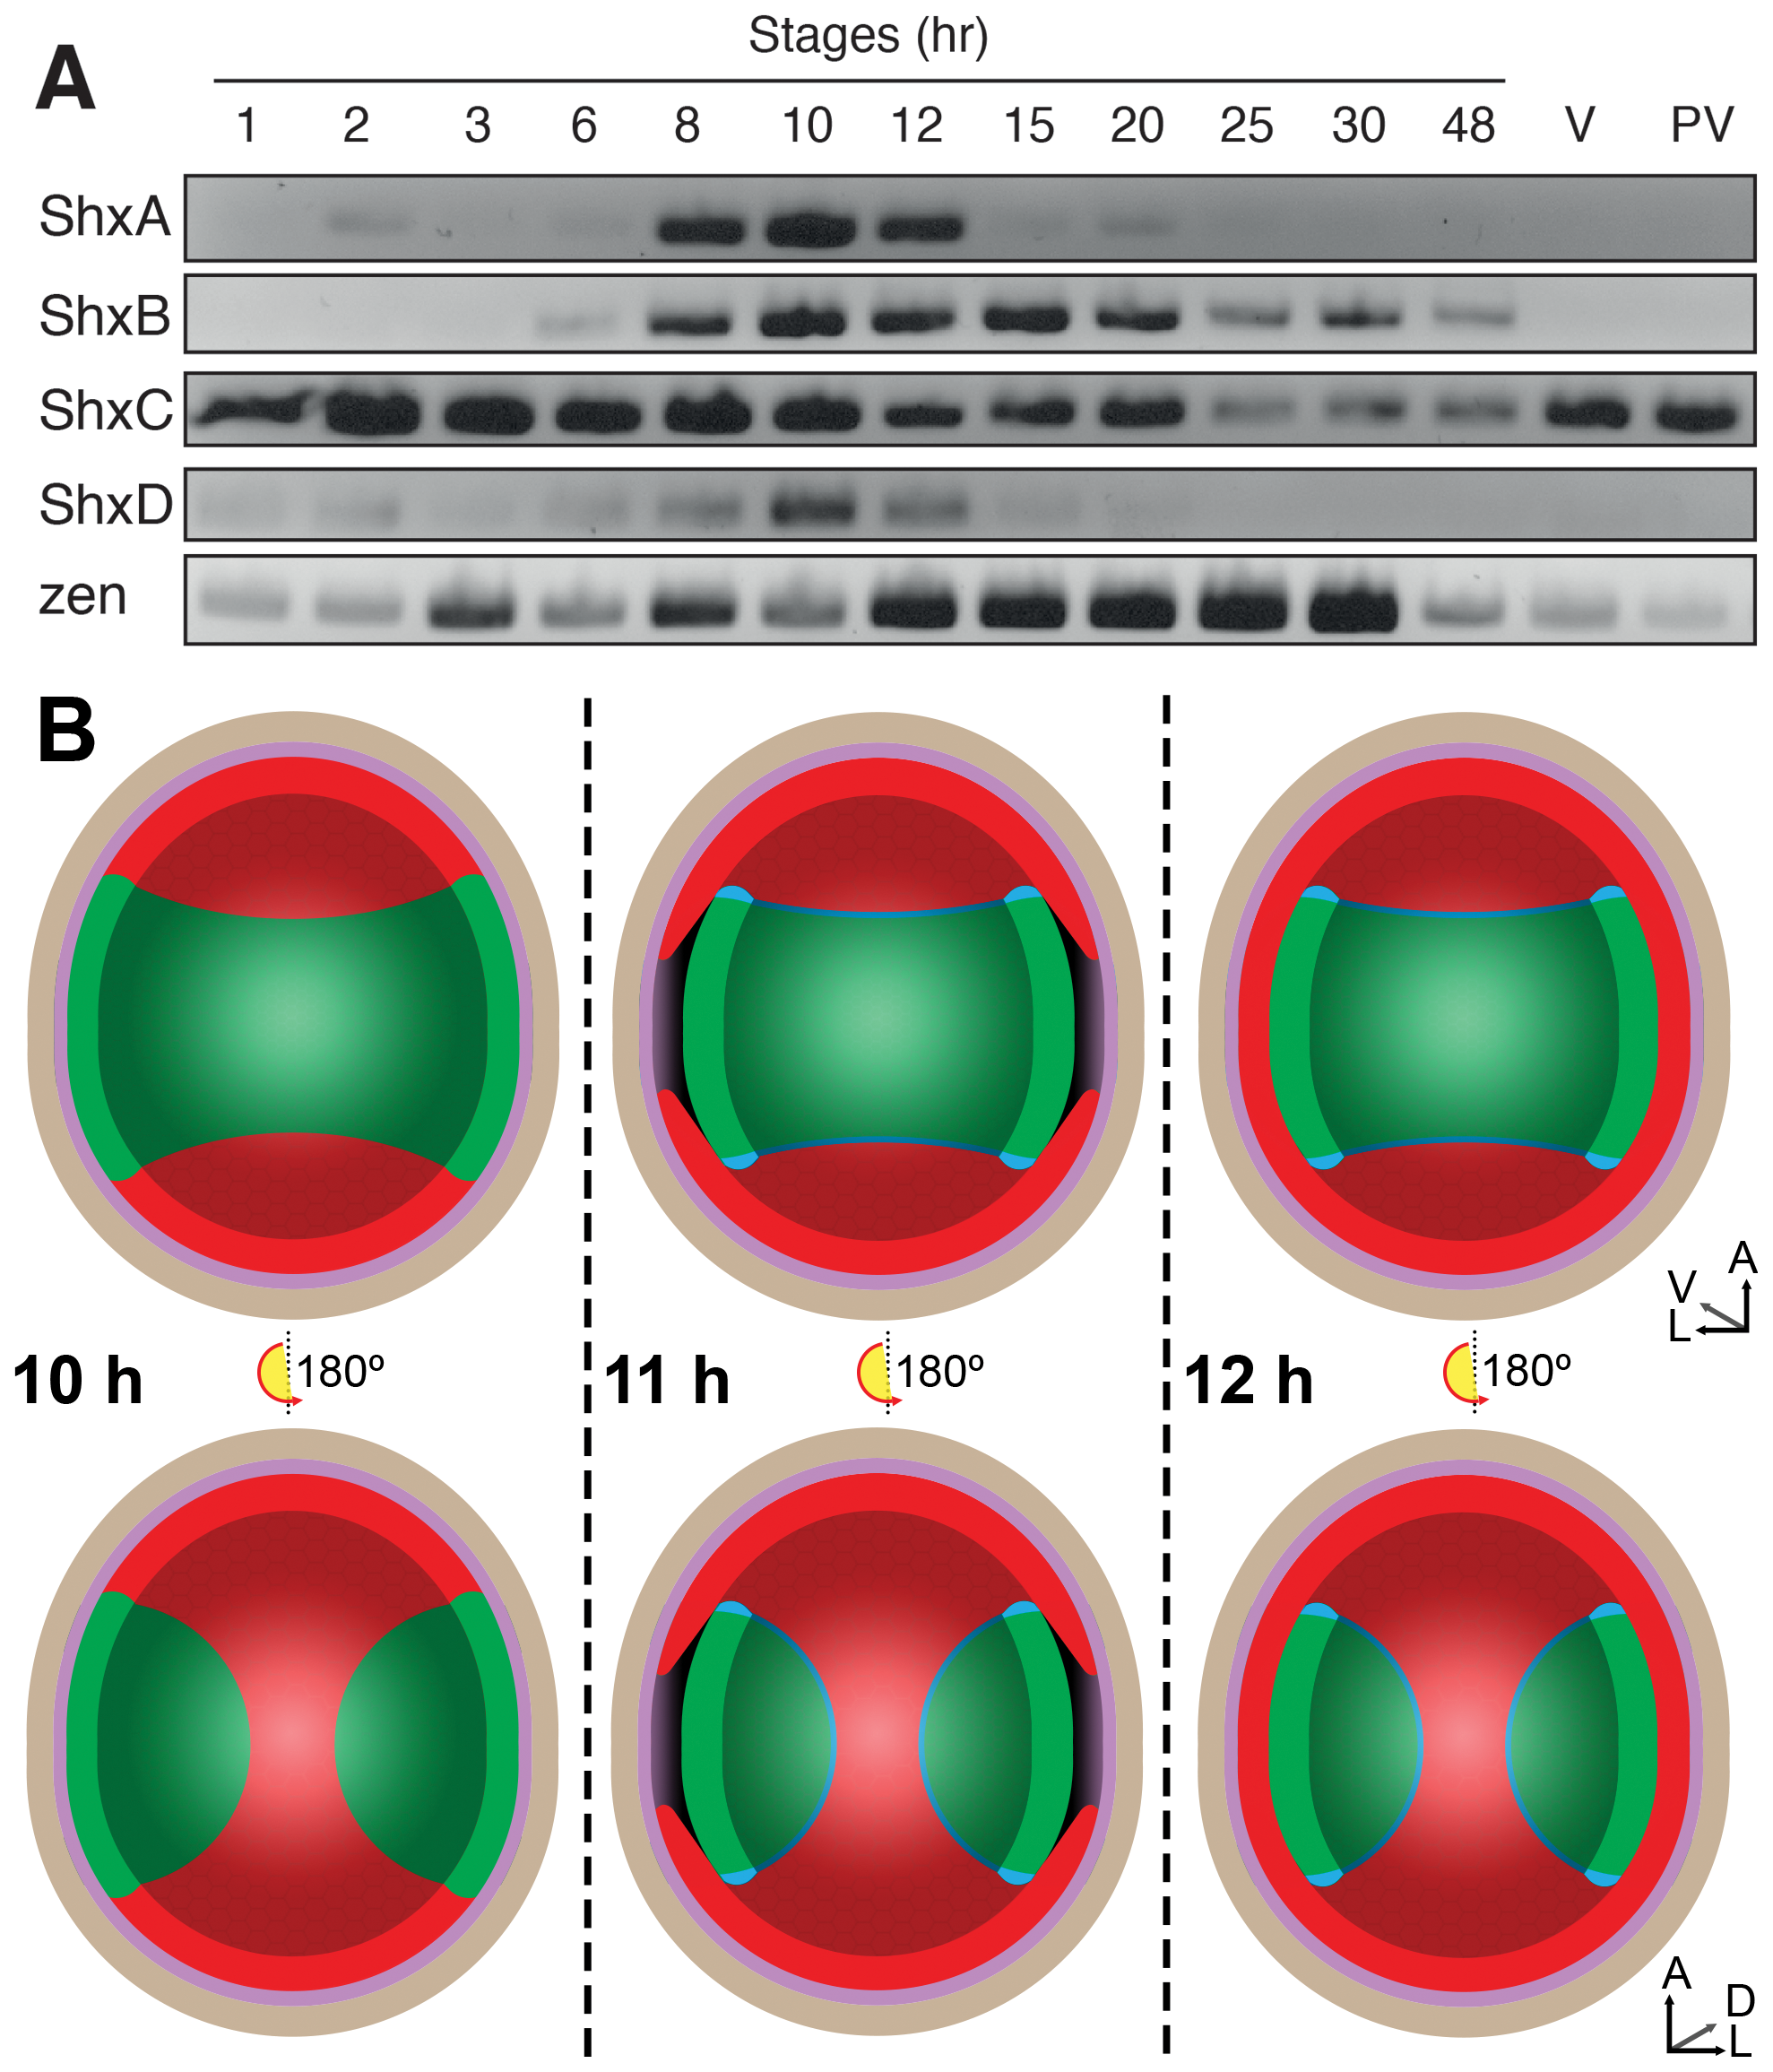 (A) Expression of Shx genes throughout embryonic stages of <i>P. aegeria</i>.